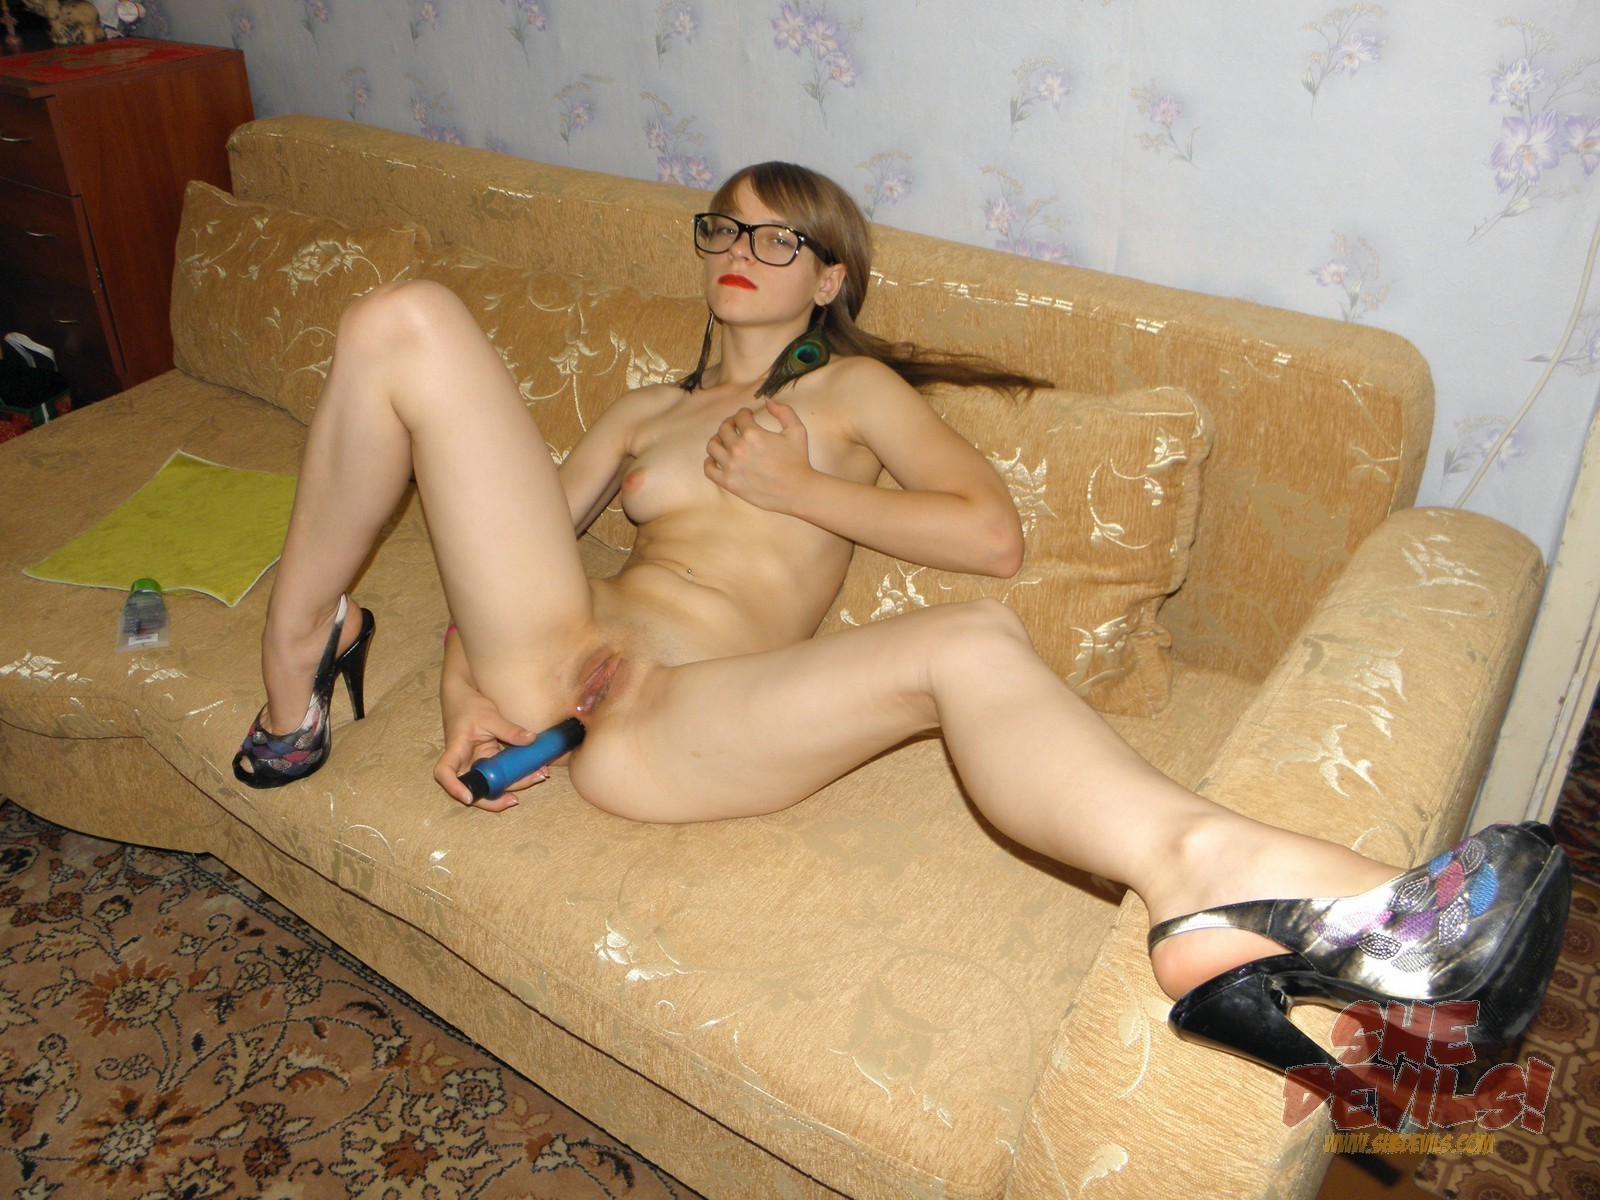 4 eyed chick gets fucked on couch 8